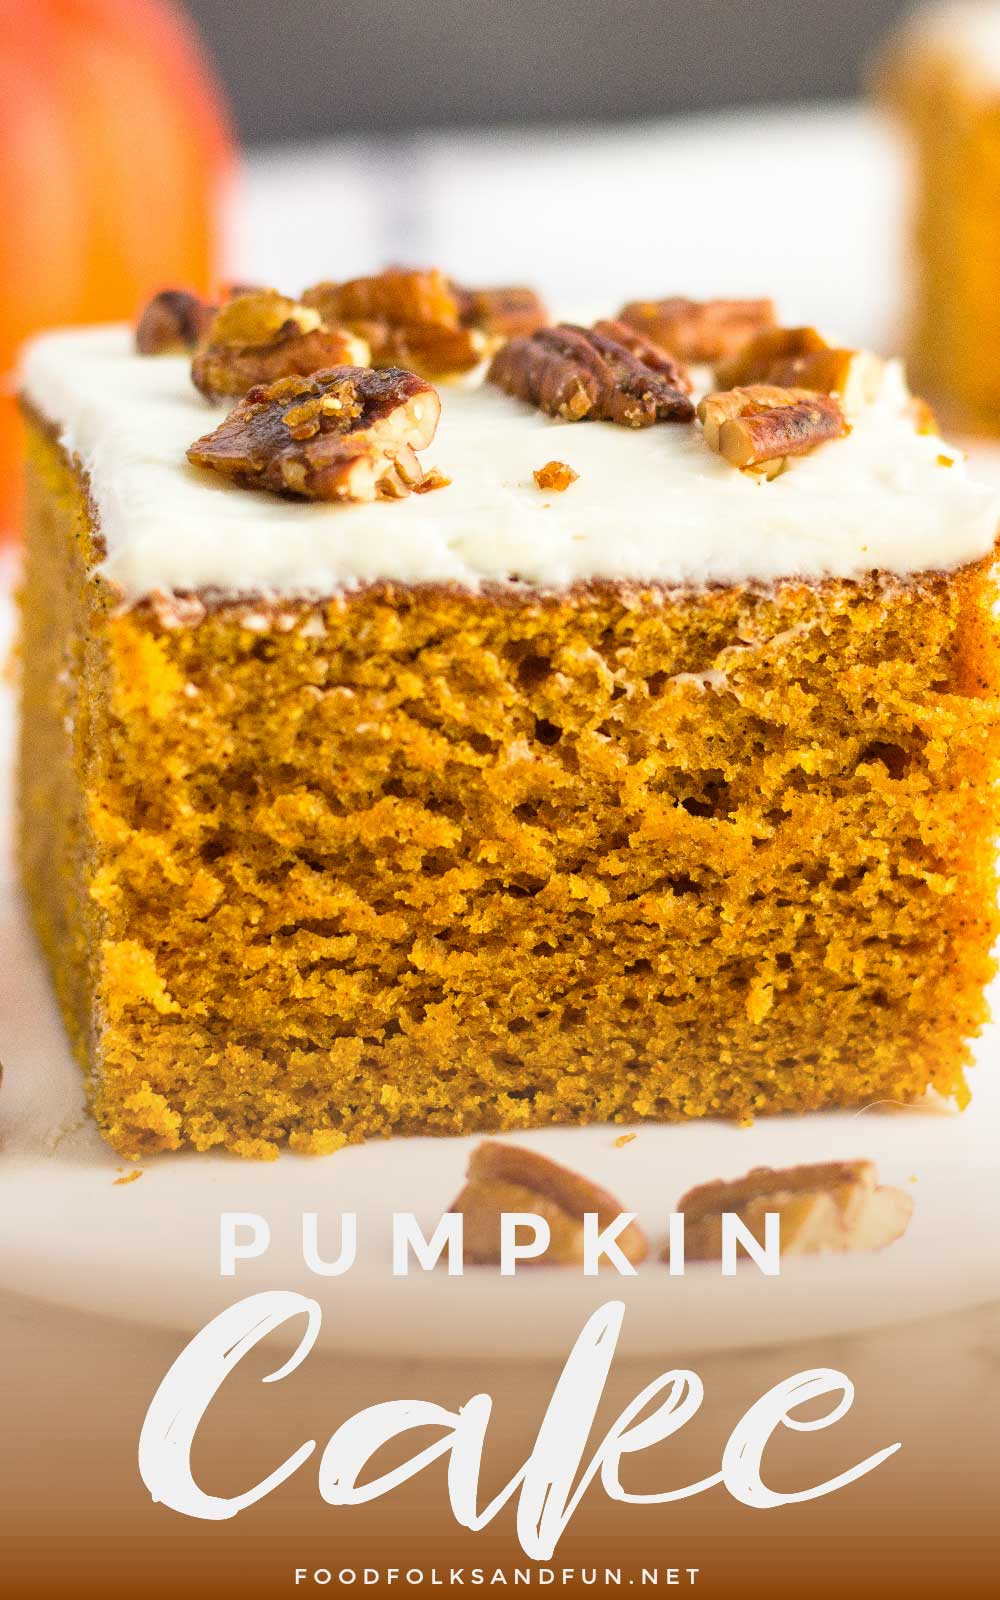 A piece of pumpkin cake with text overlay for Pinterest